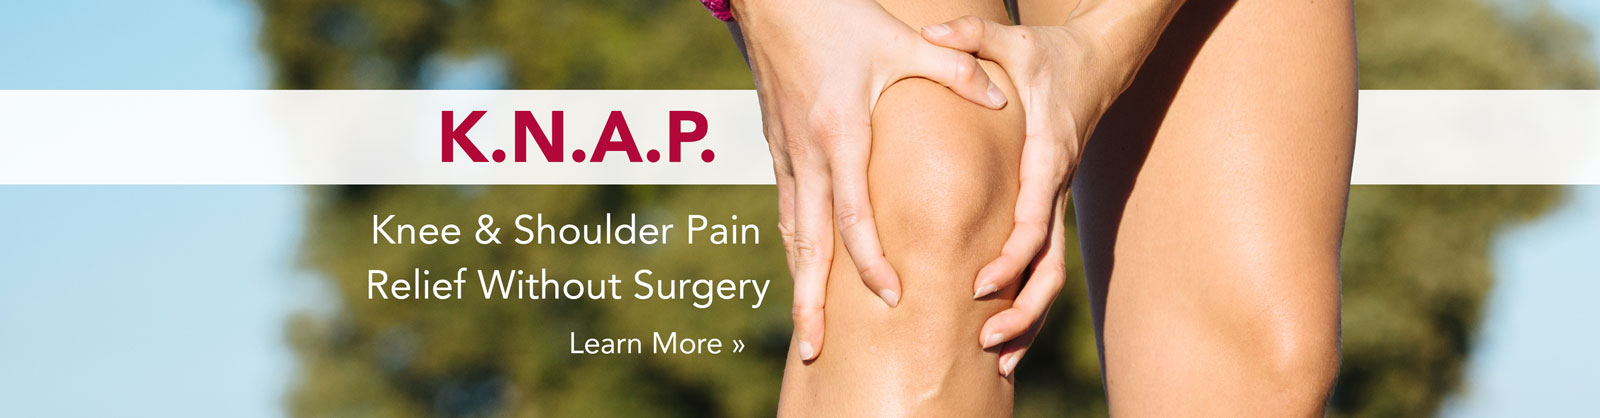 KNAP - Knee & Shoulder Pain Relief Without Surgery - Learn More!